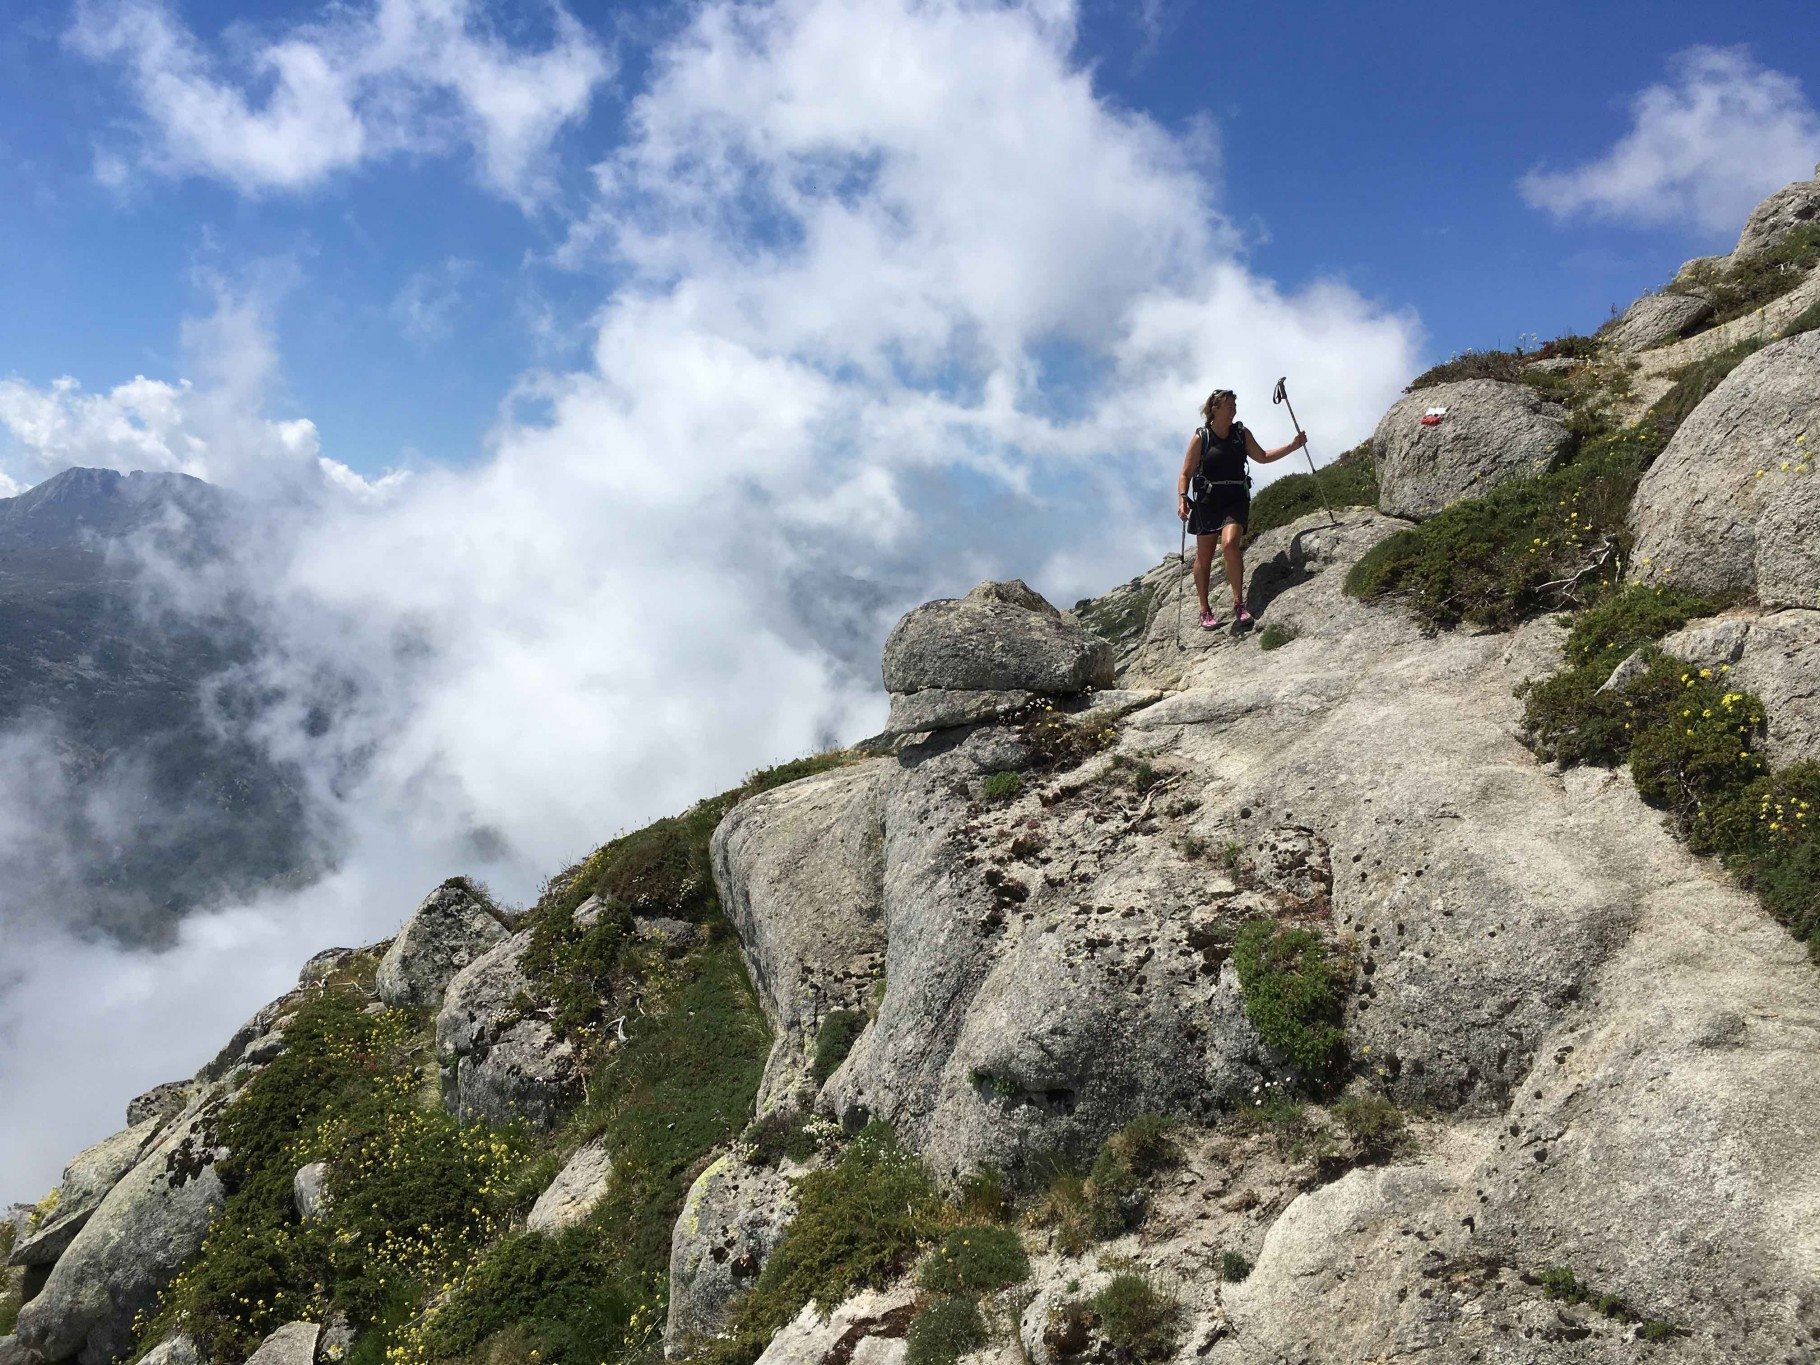 A hike along the Corsican super highway - The famous 'GR20' Trek